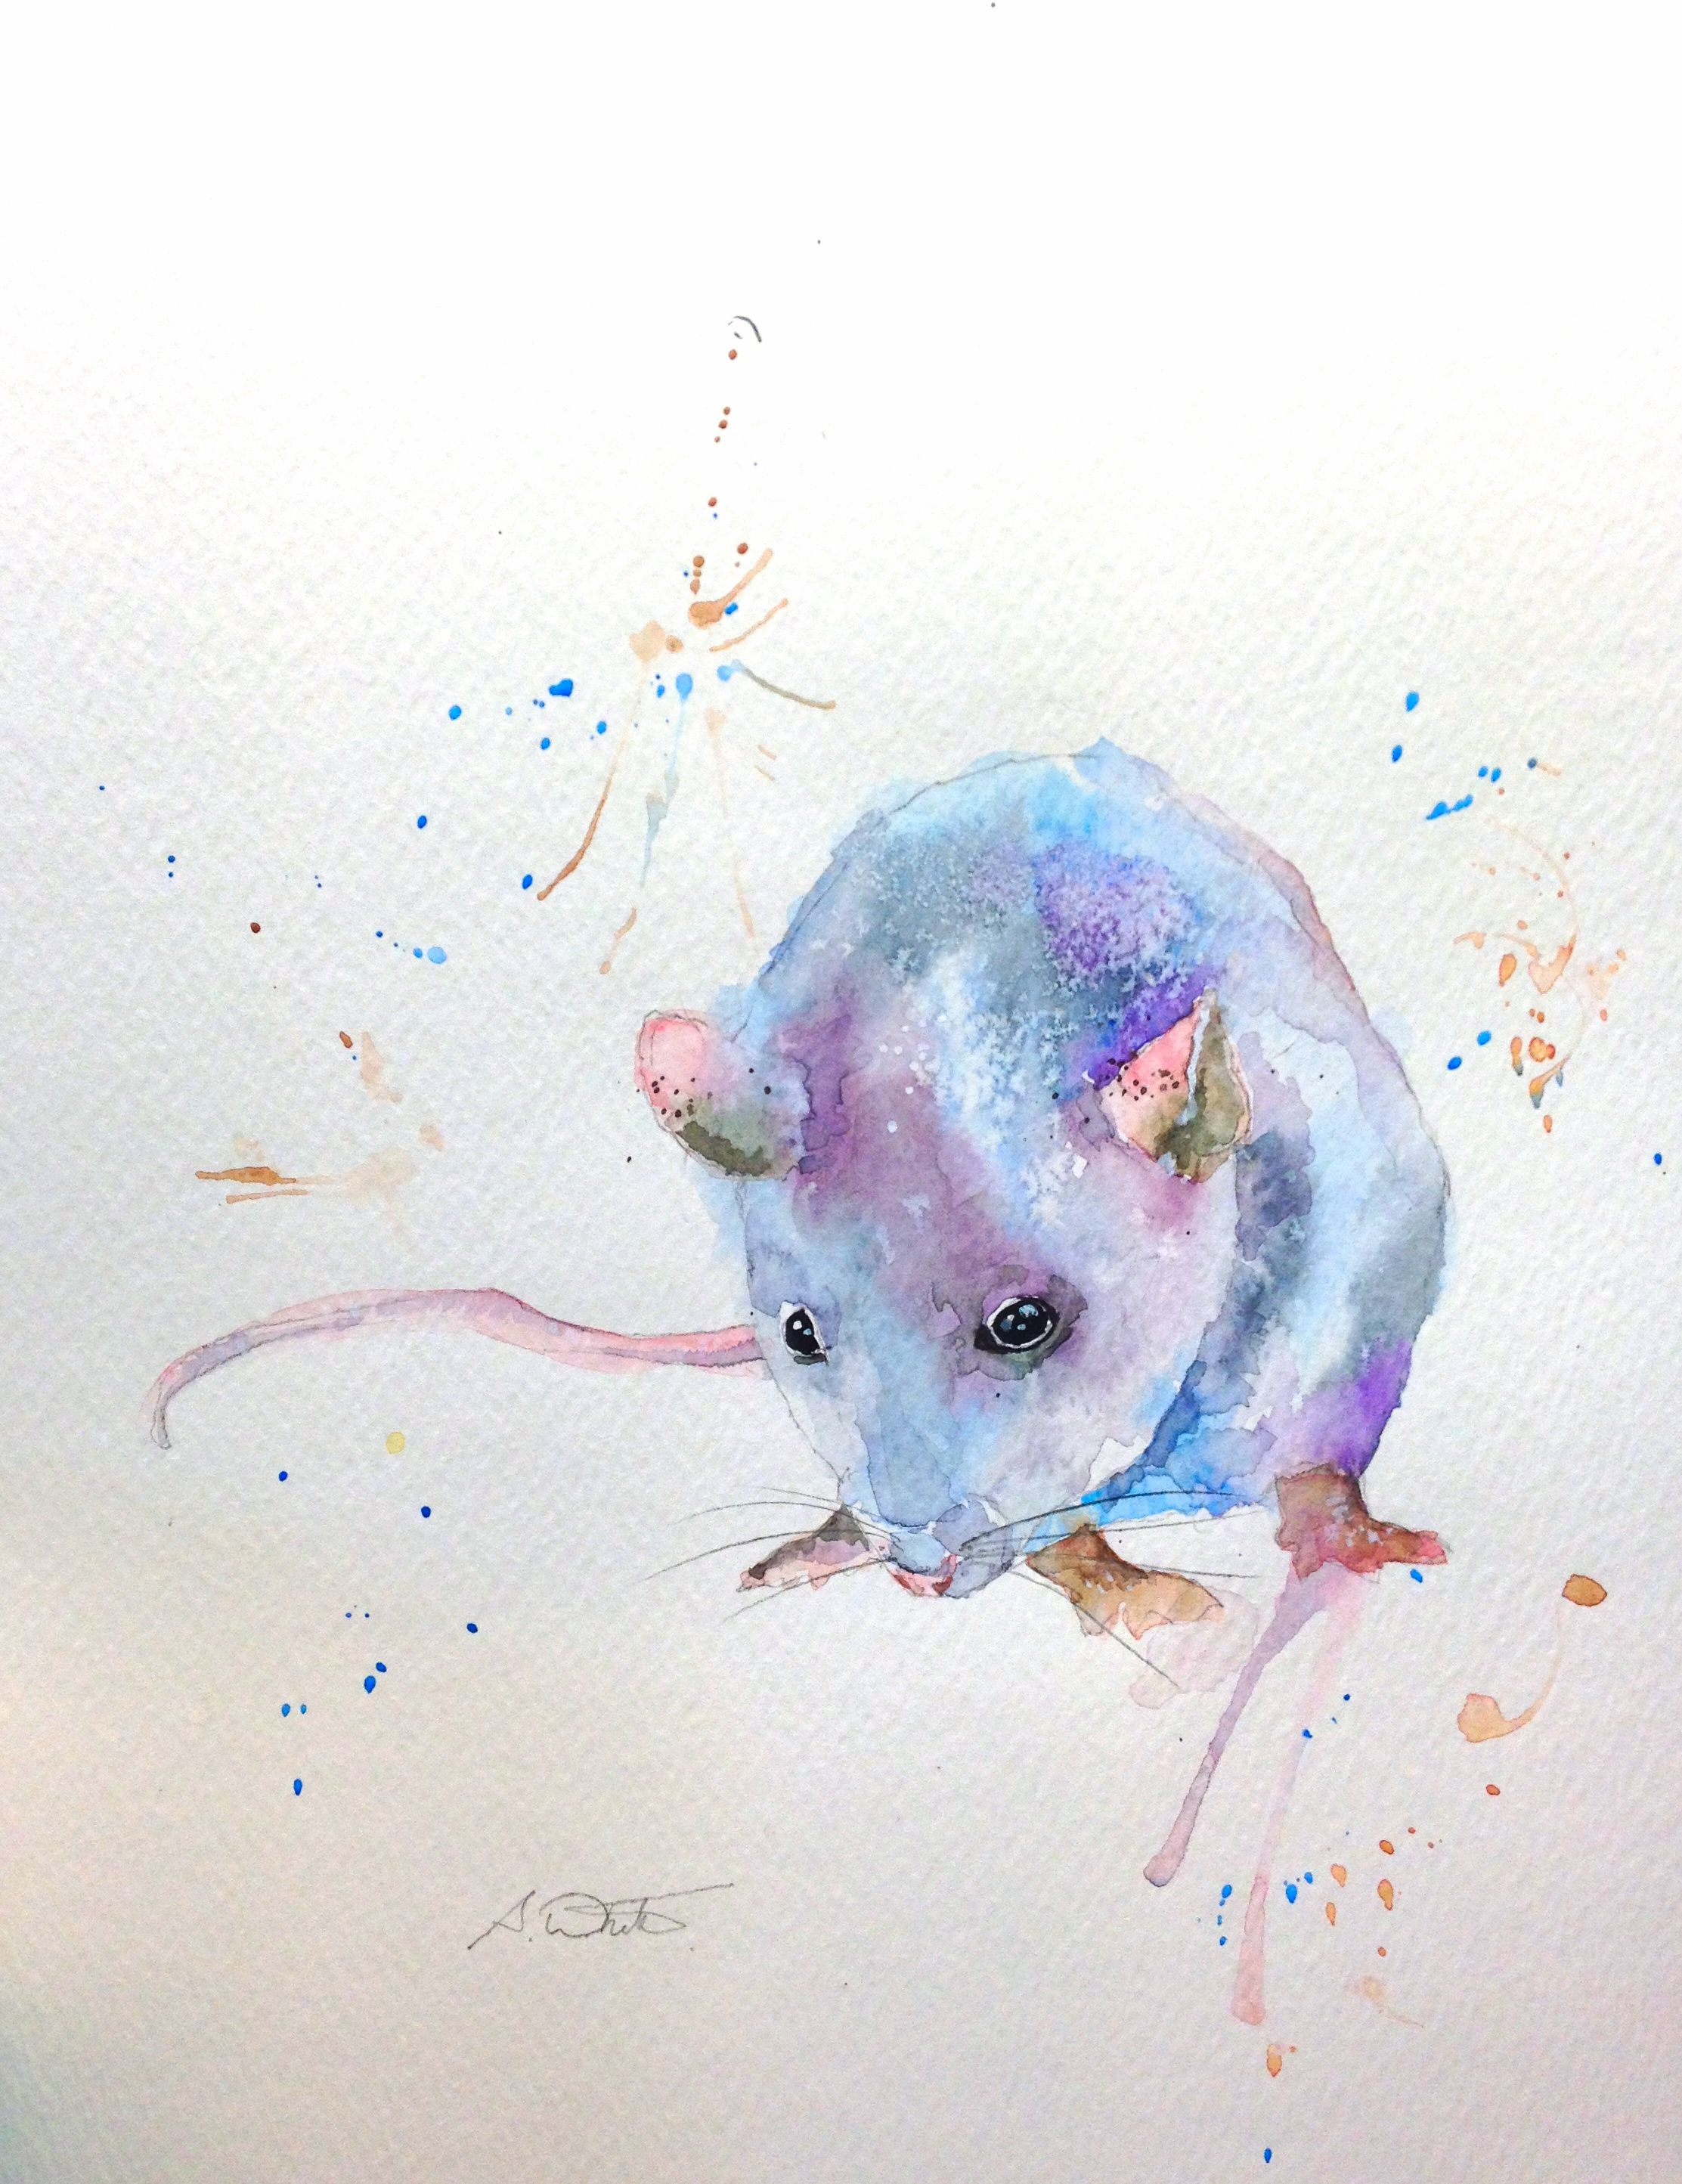 essay animal a beast of a literary magazine essay little blue mouse by sarah white for more information